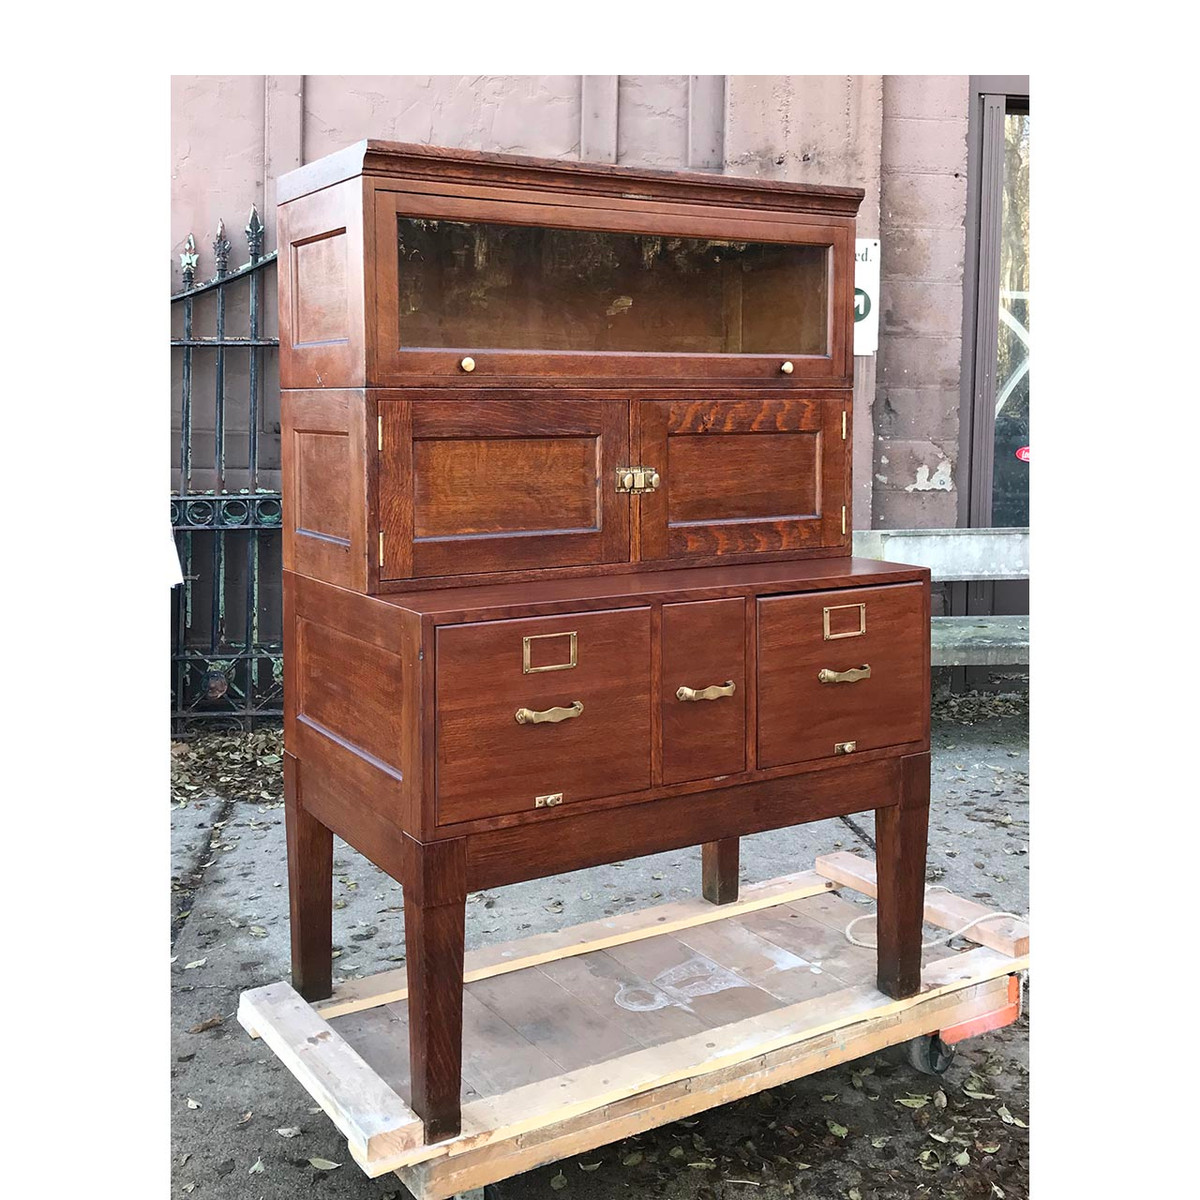 F17139 - Antique Multi-Section Library Cabinet